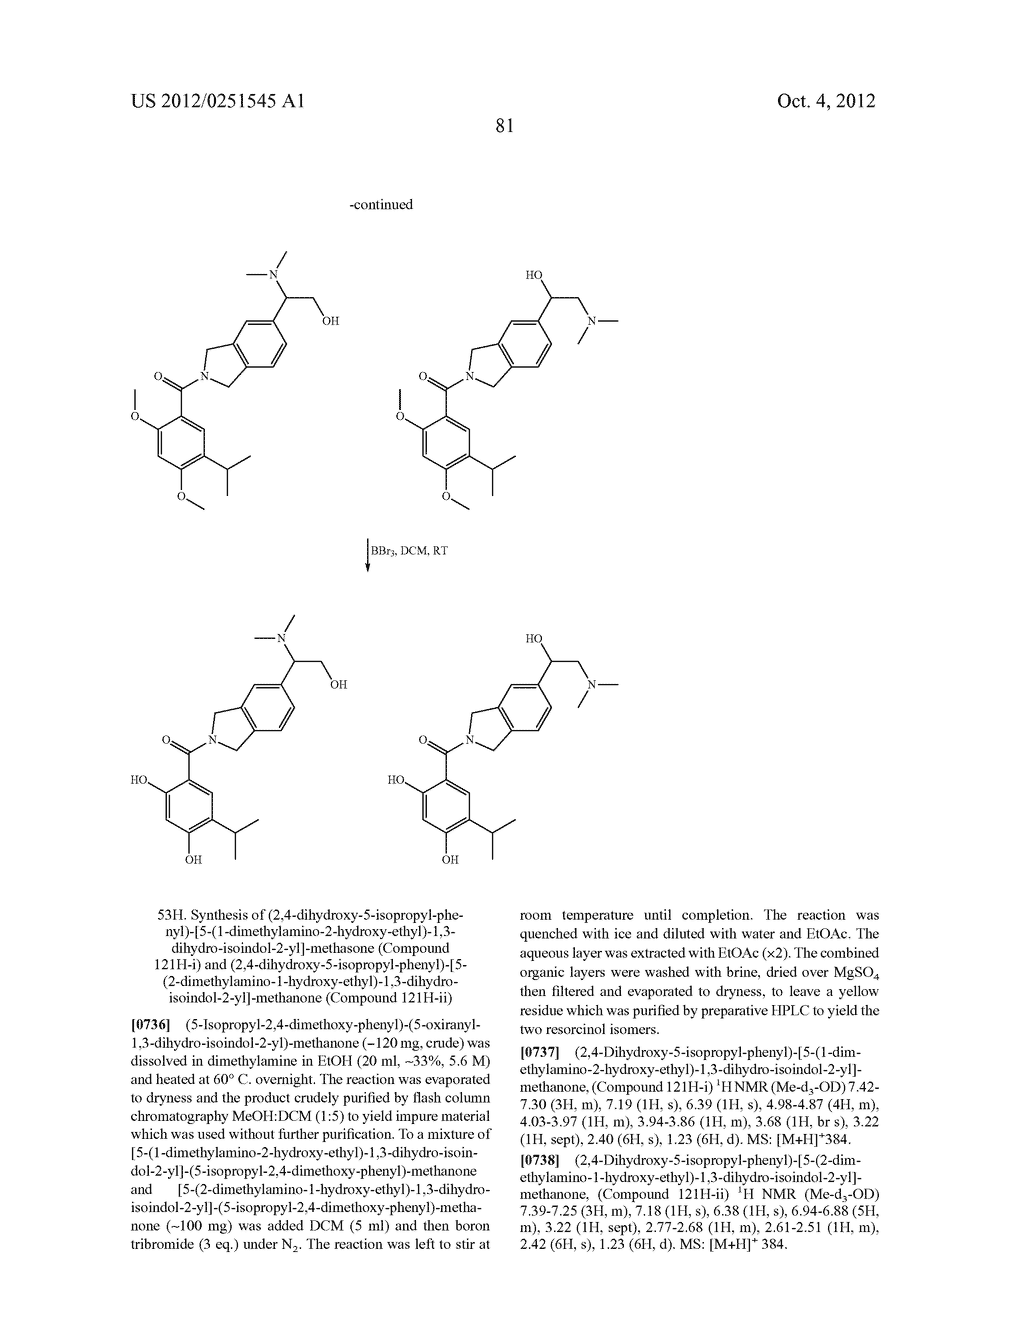 Therapeutic Combinations Of Hydroxybenzamide Derivatives As Inhibitors Of     HSP90 - diagram, schematic, and image 82